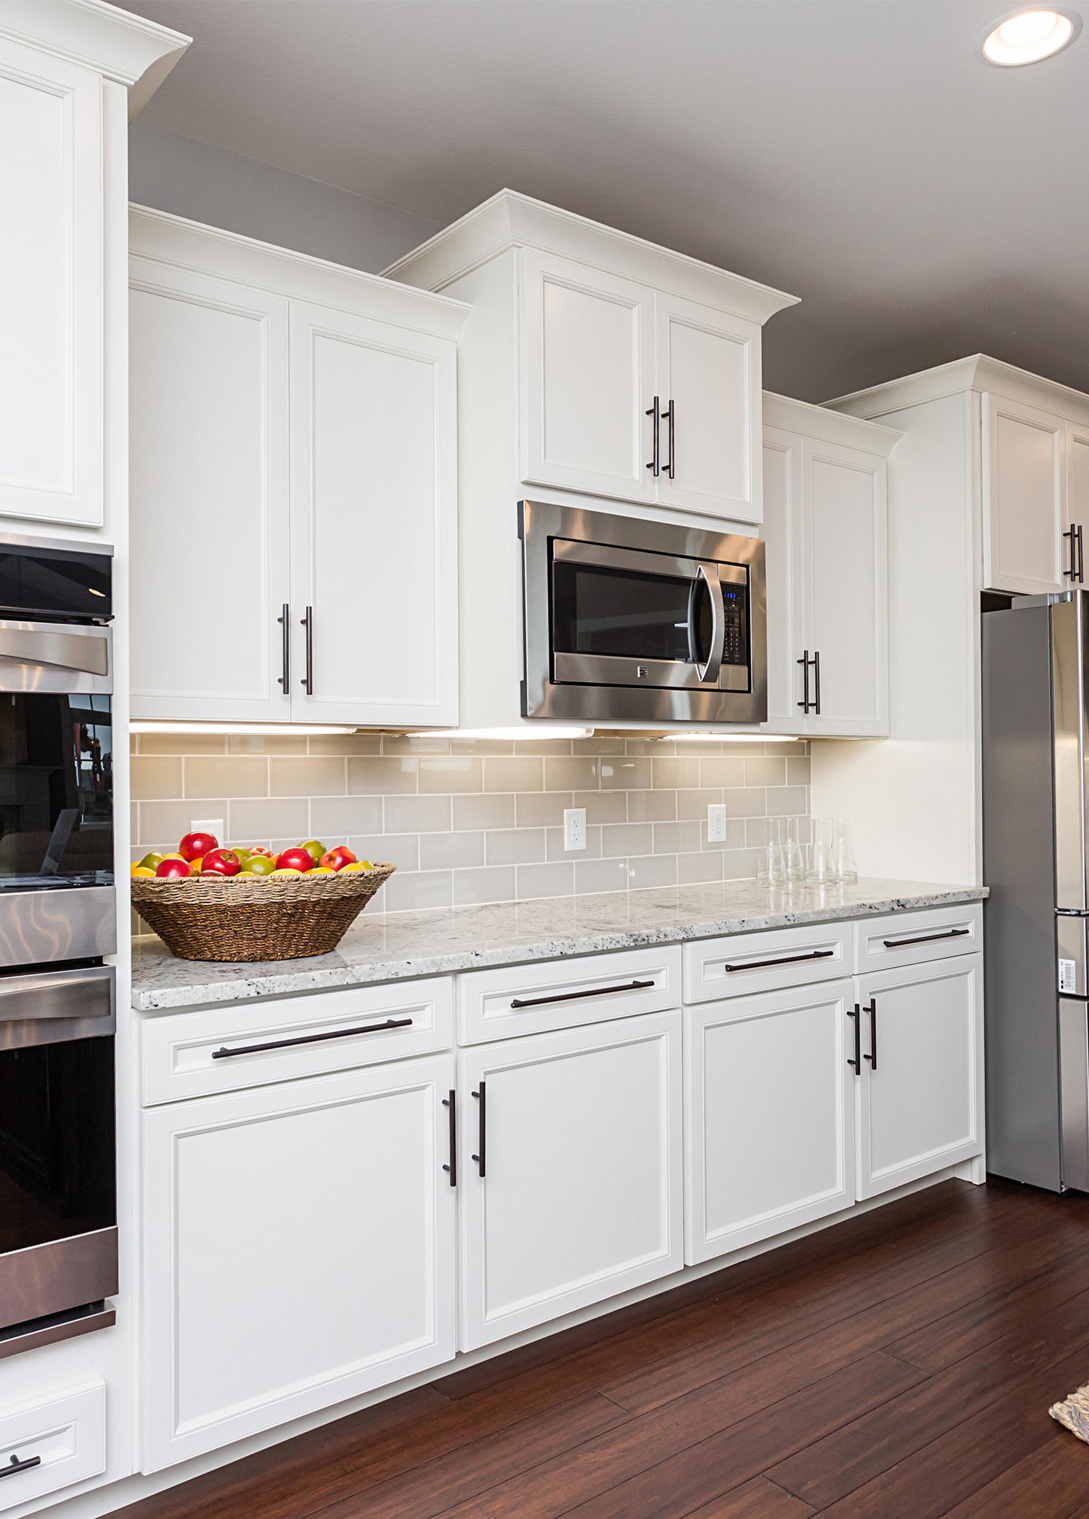 This sophisticated, classic offwhite kitchen features